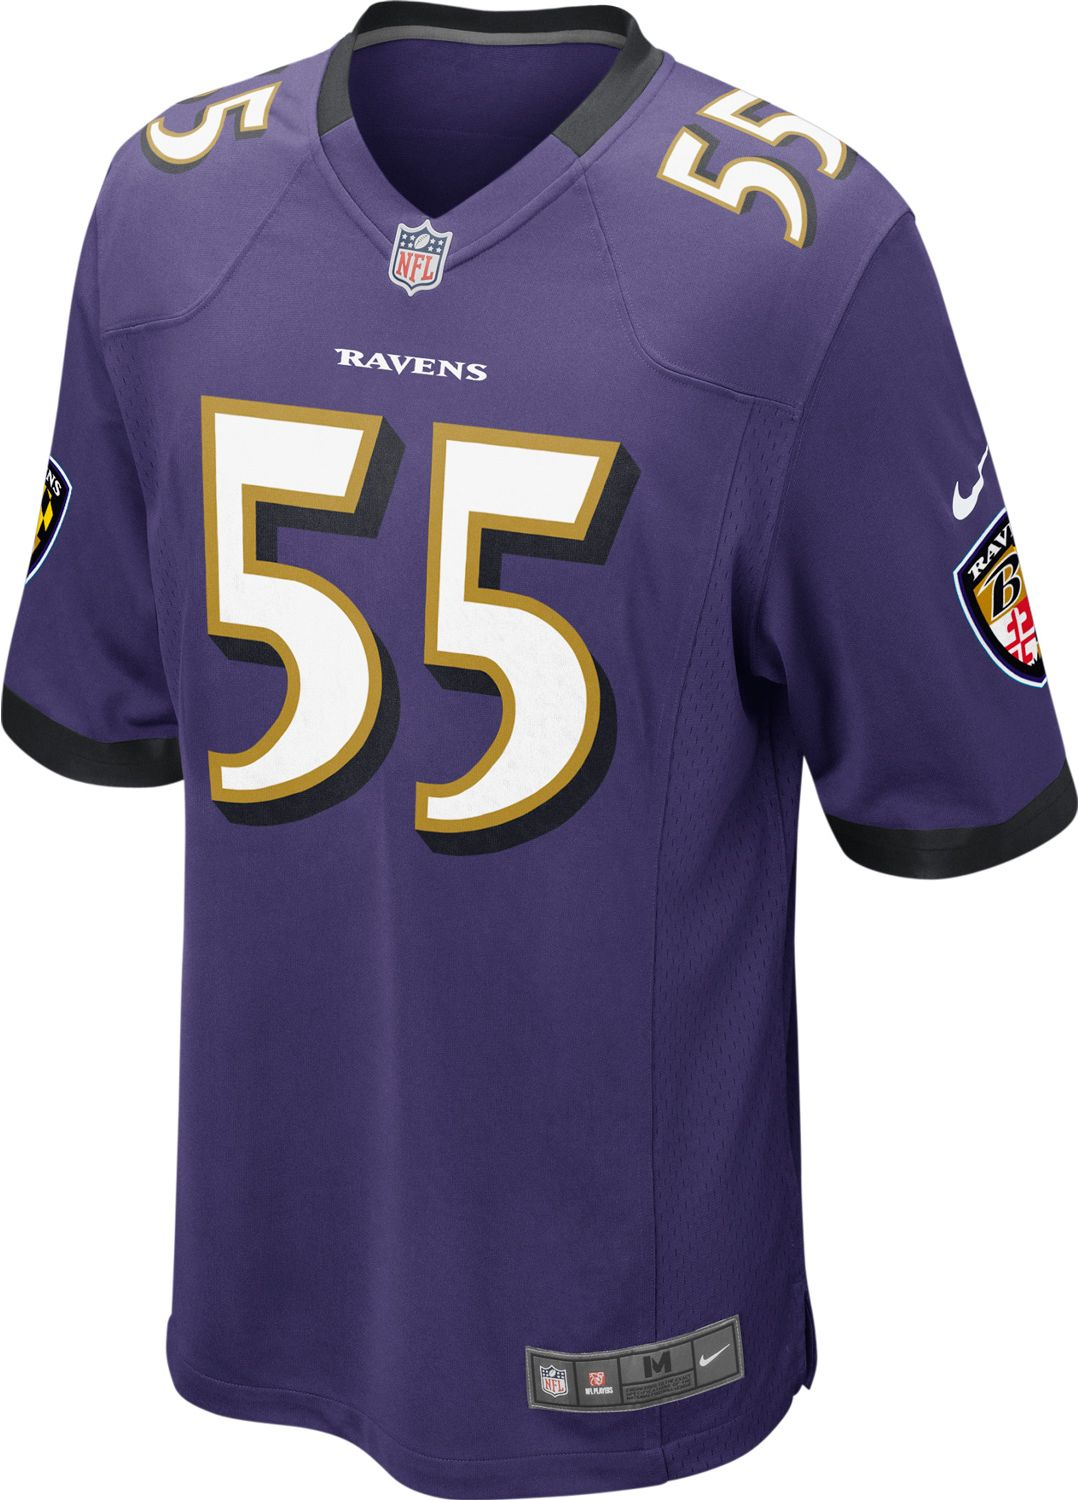 5d5d52aa Nike Men's Home Game Jersey Baltimore Ravens Terrell Suggs #55